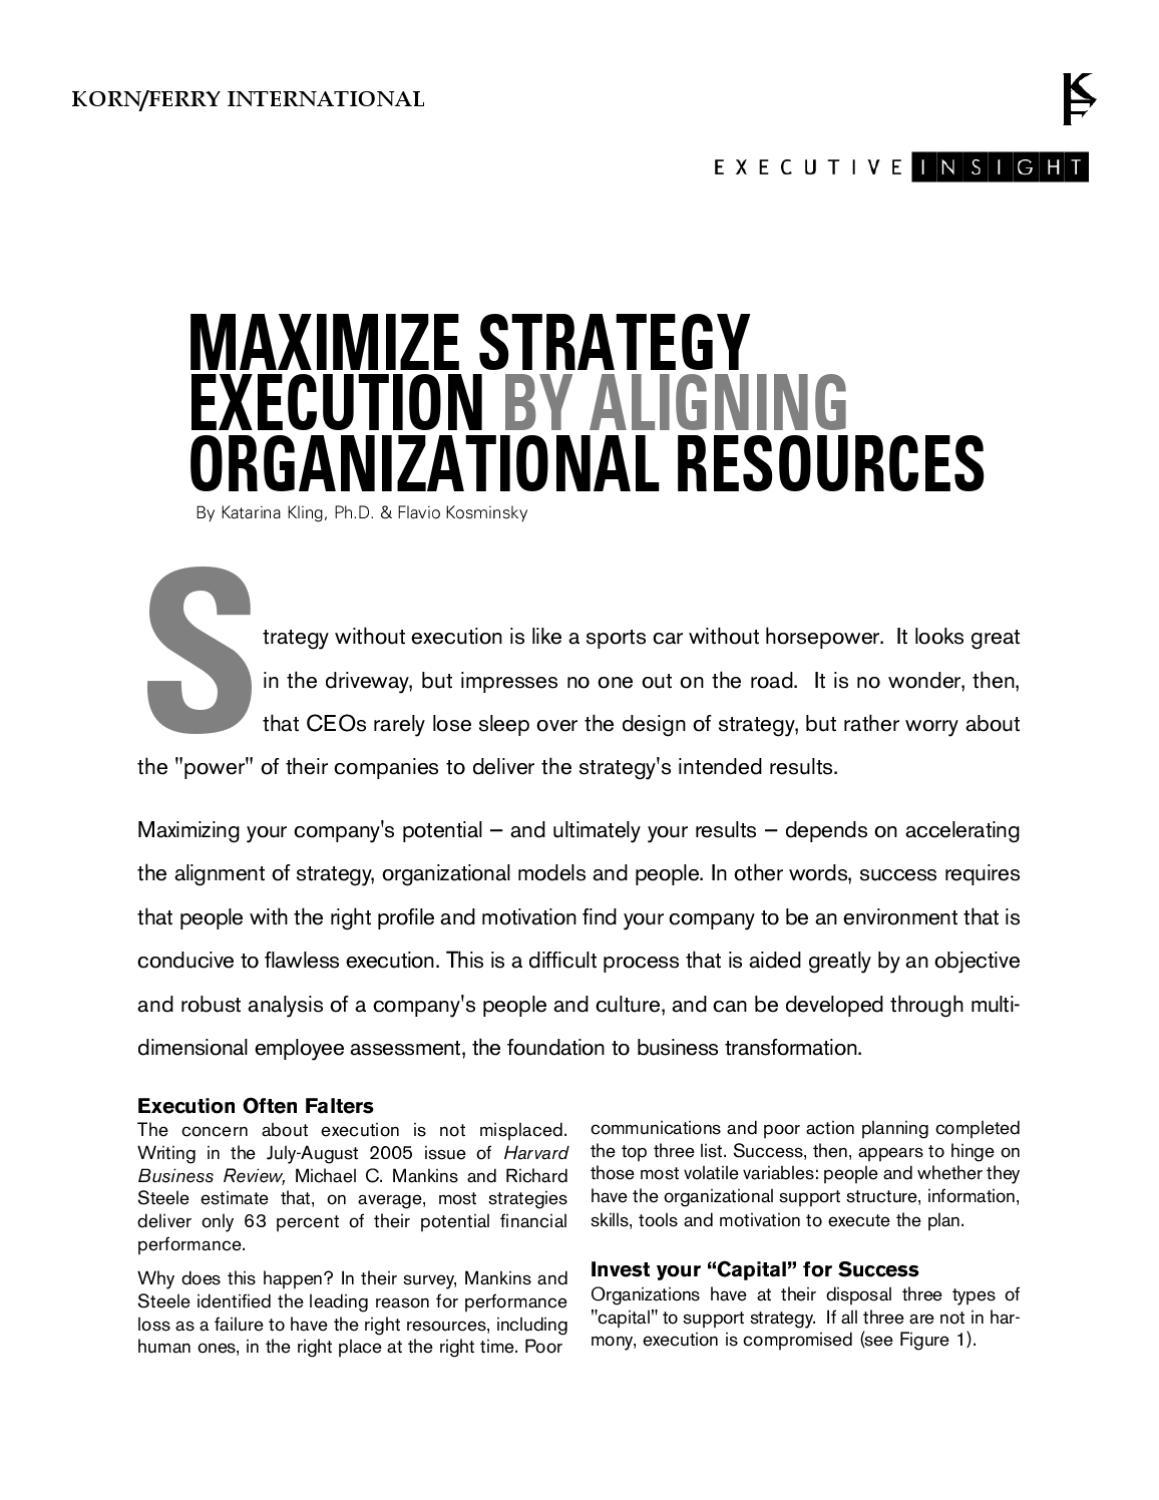 Maximize Strategy Execution by Aligning Organizational